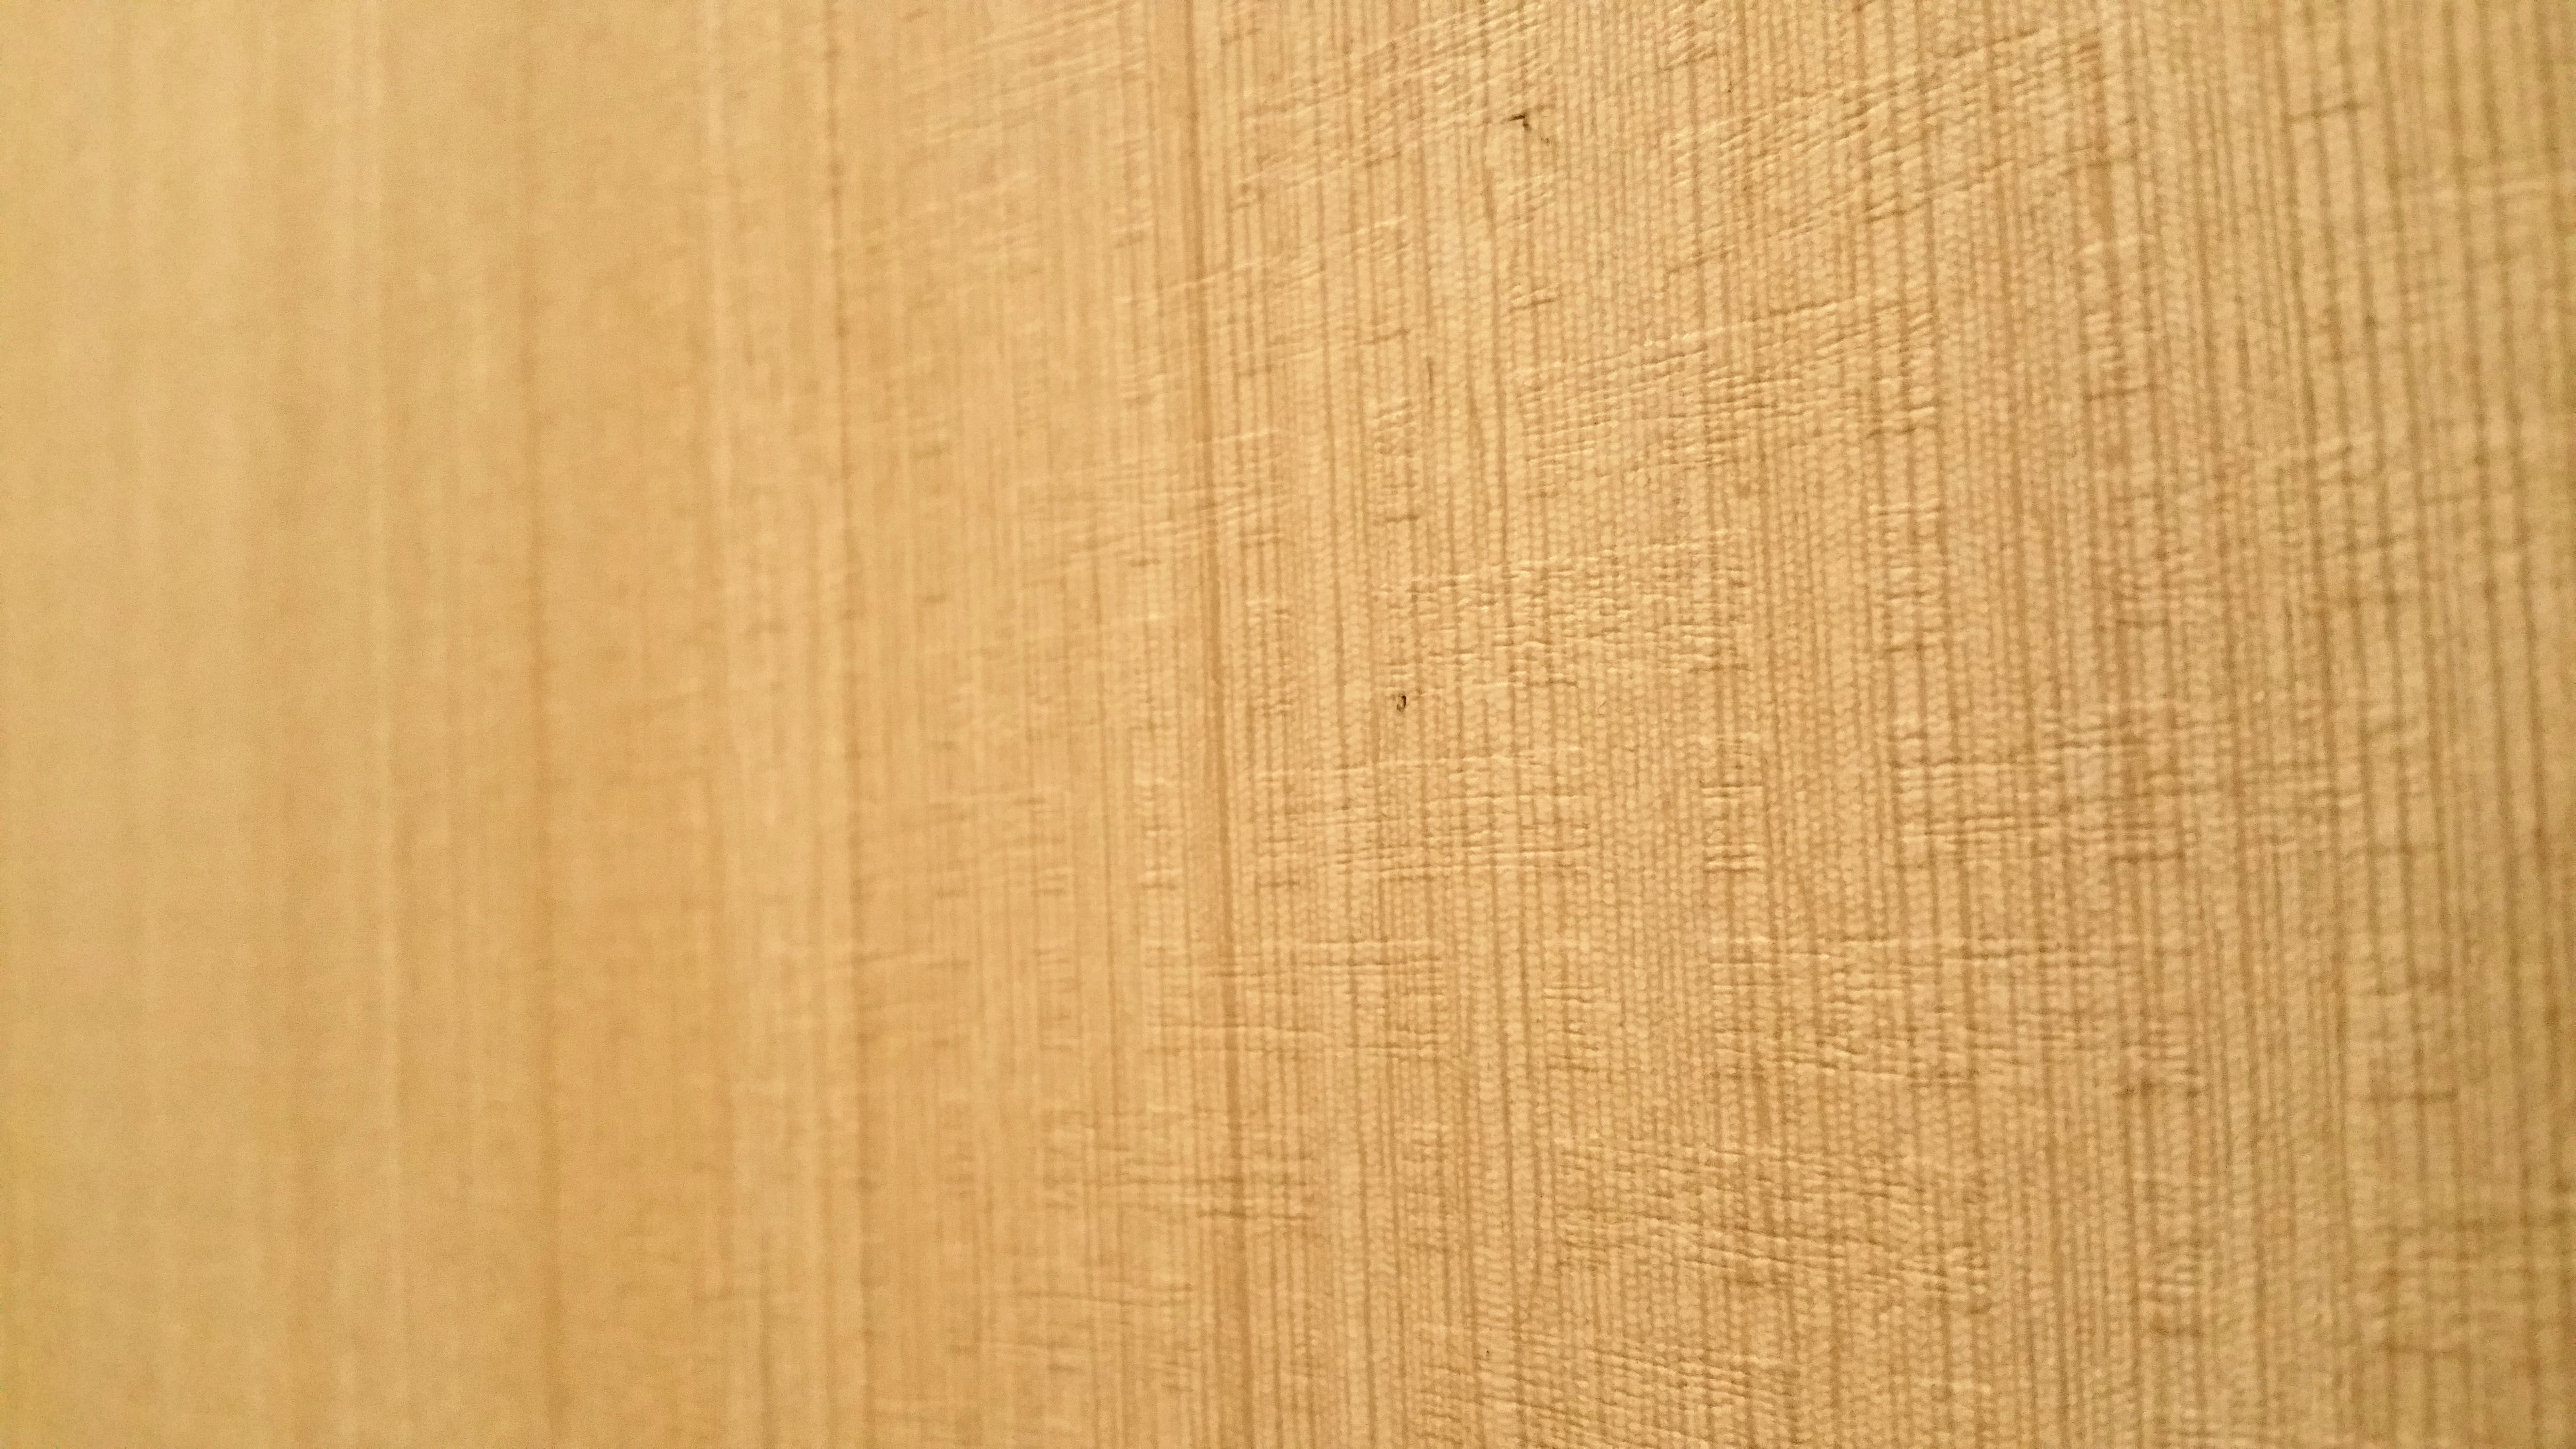 Free stock photo of wood, pattern, texture, brown